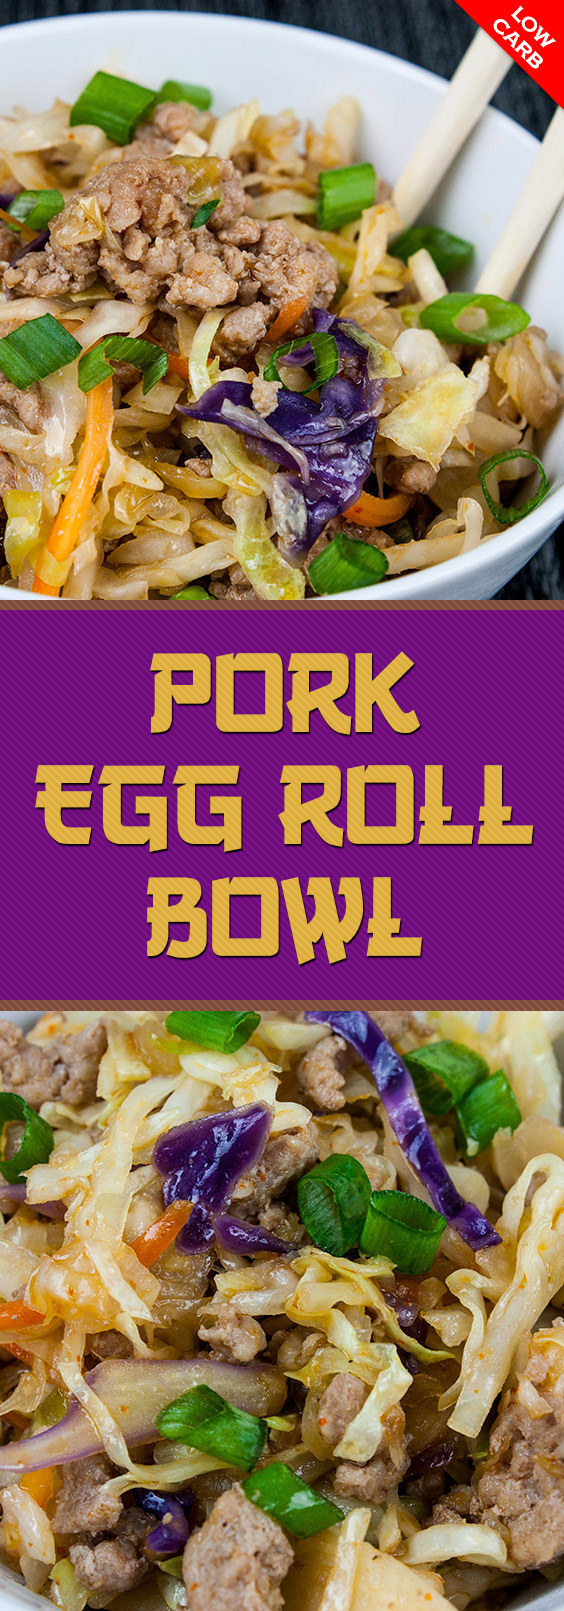 "Pork Egg Roll Bowl - Same great flavor as a traditional egg roll just without the wrapper. It's also known as ""crack slaw"". Super easy to make with budget-friendly ingredients. #lowcarb #keto #dinner #recipe #healthy"